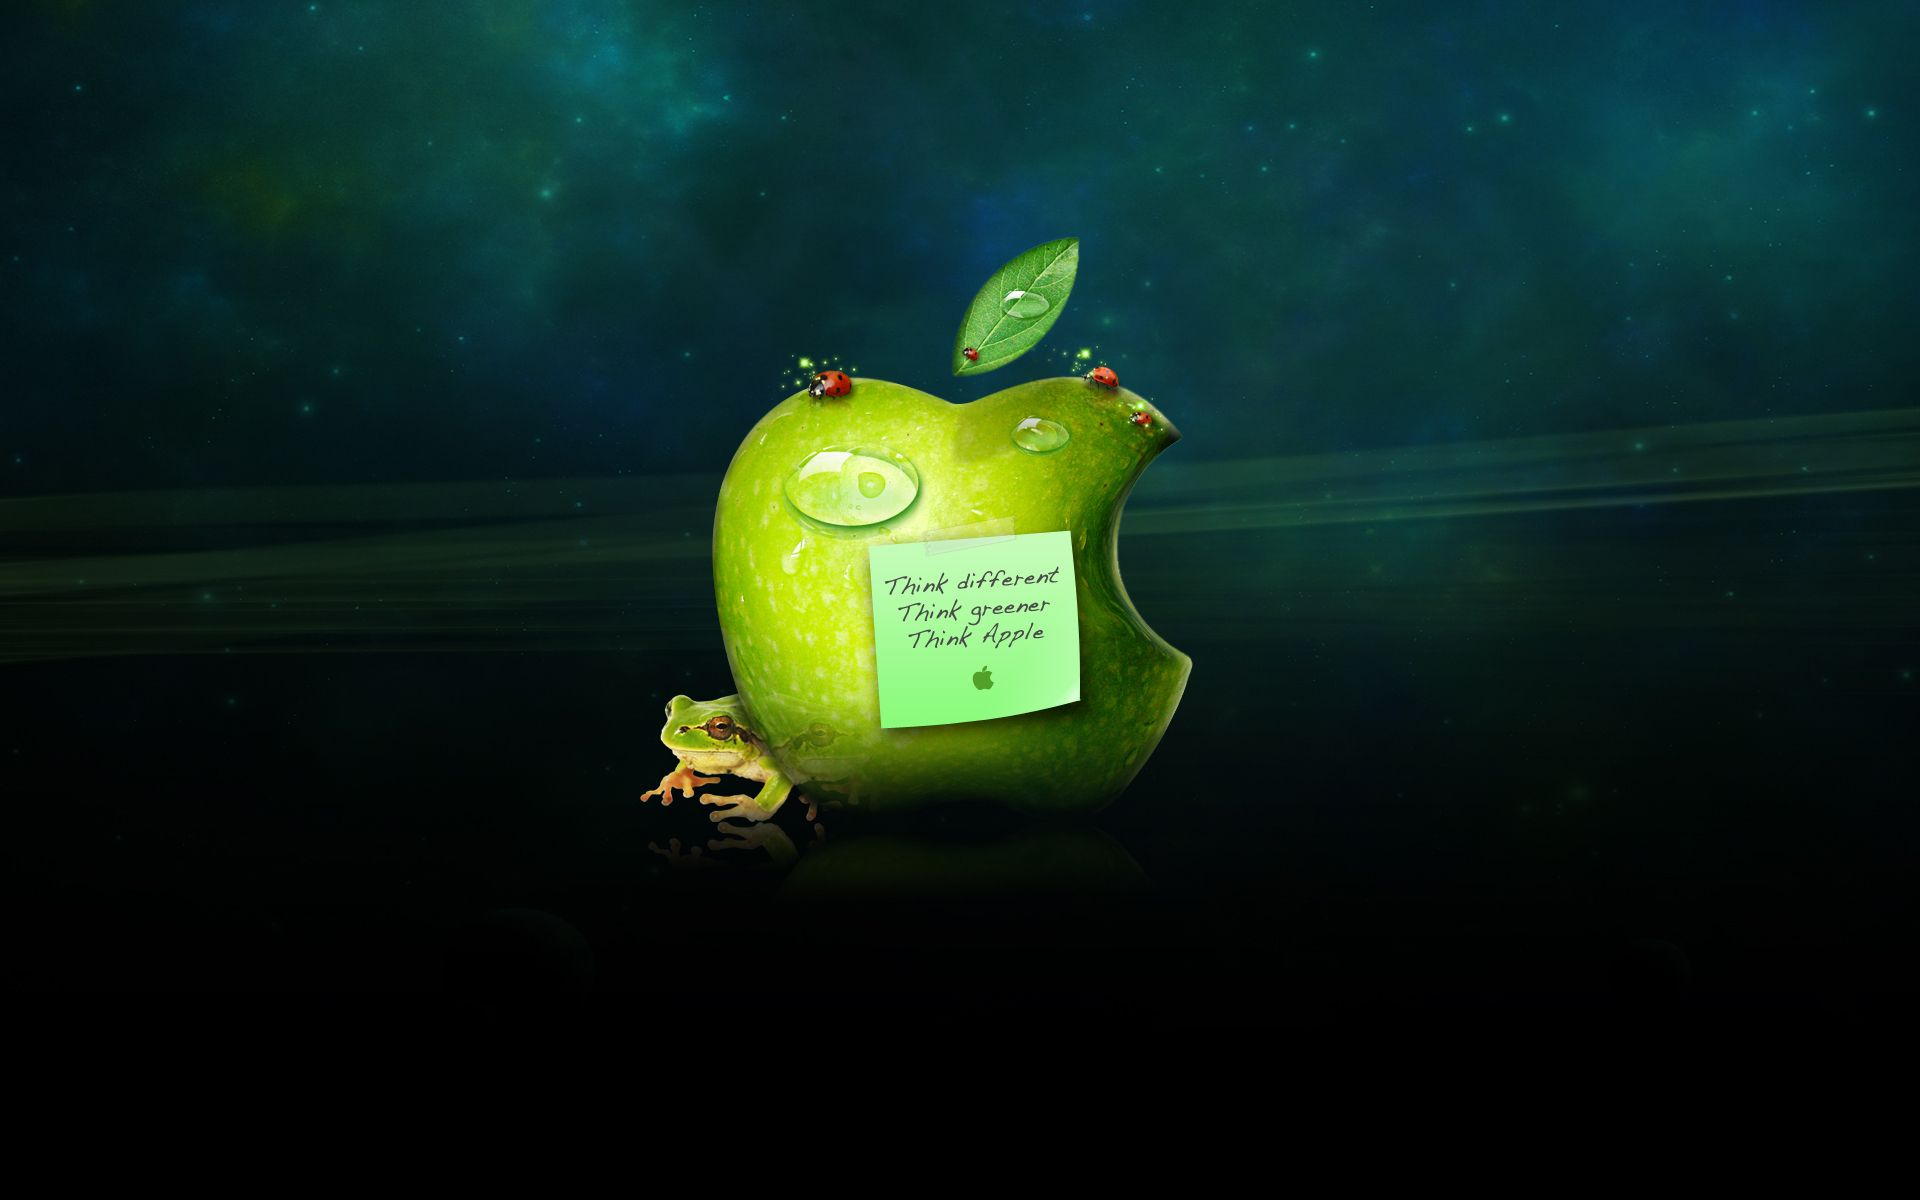 collection of apple symbol wallpaper on hdwallpapers apple logo hd wallpapers wallpapers